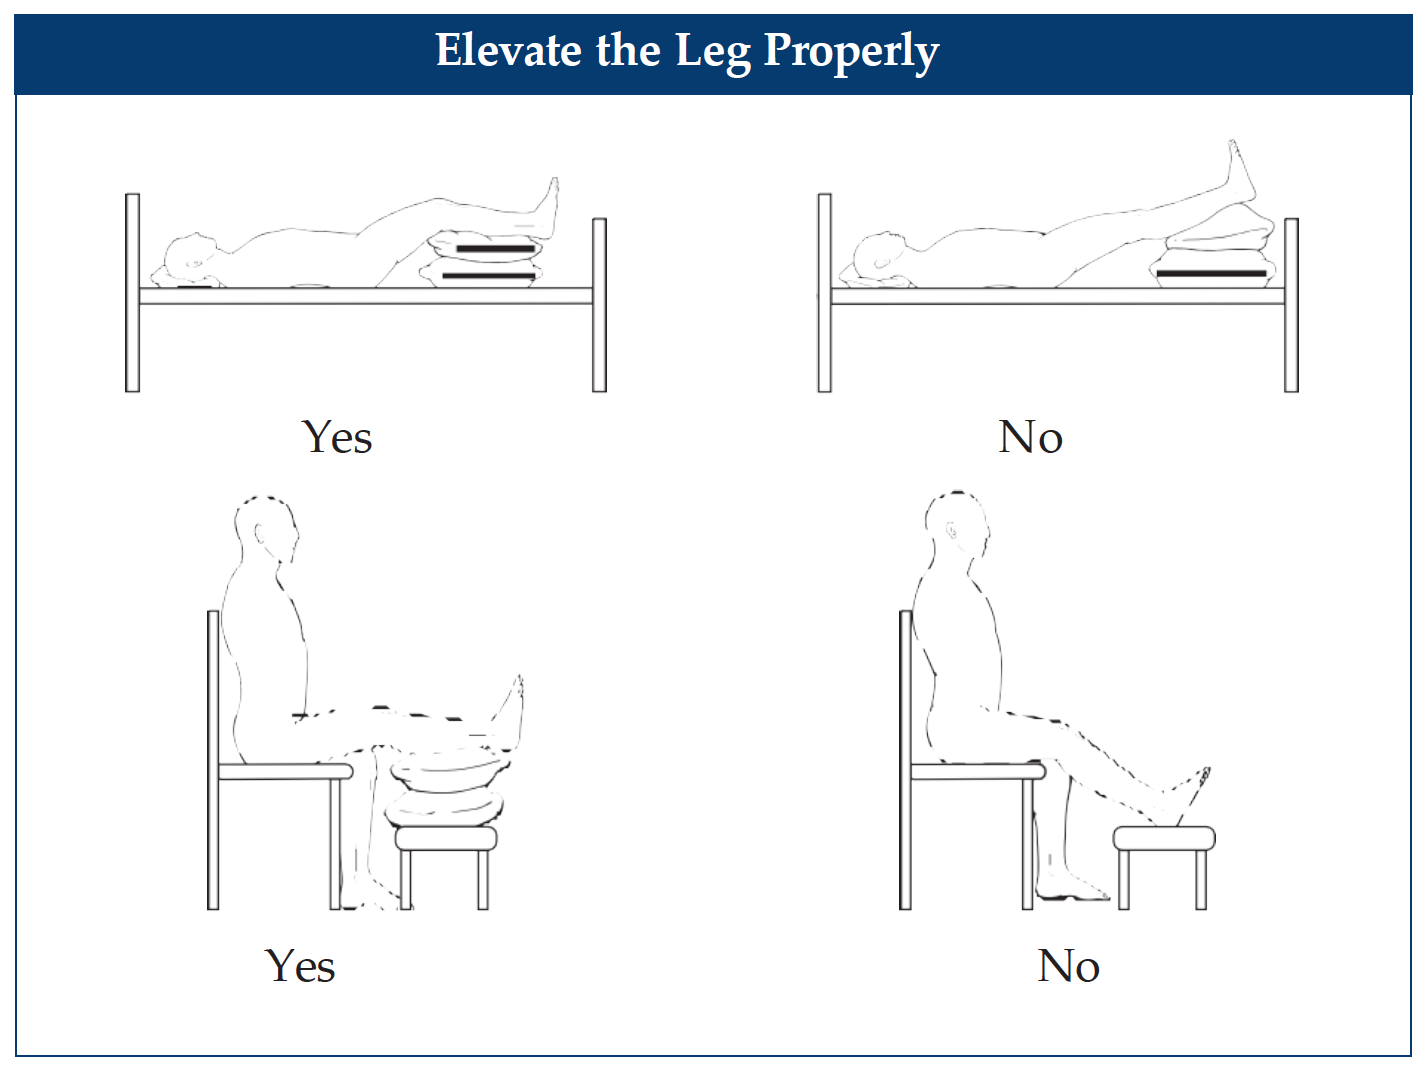 elevate the leg properly